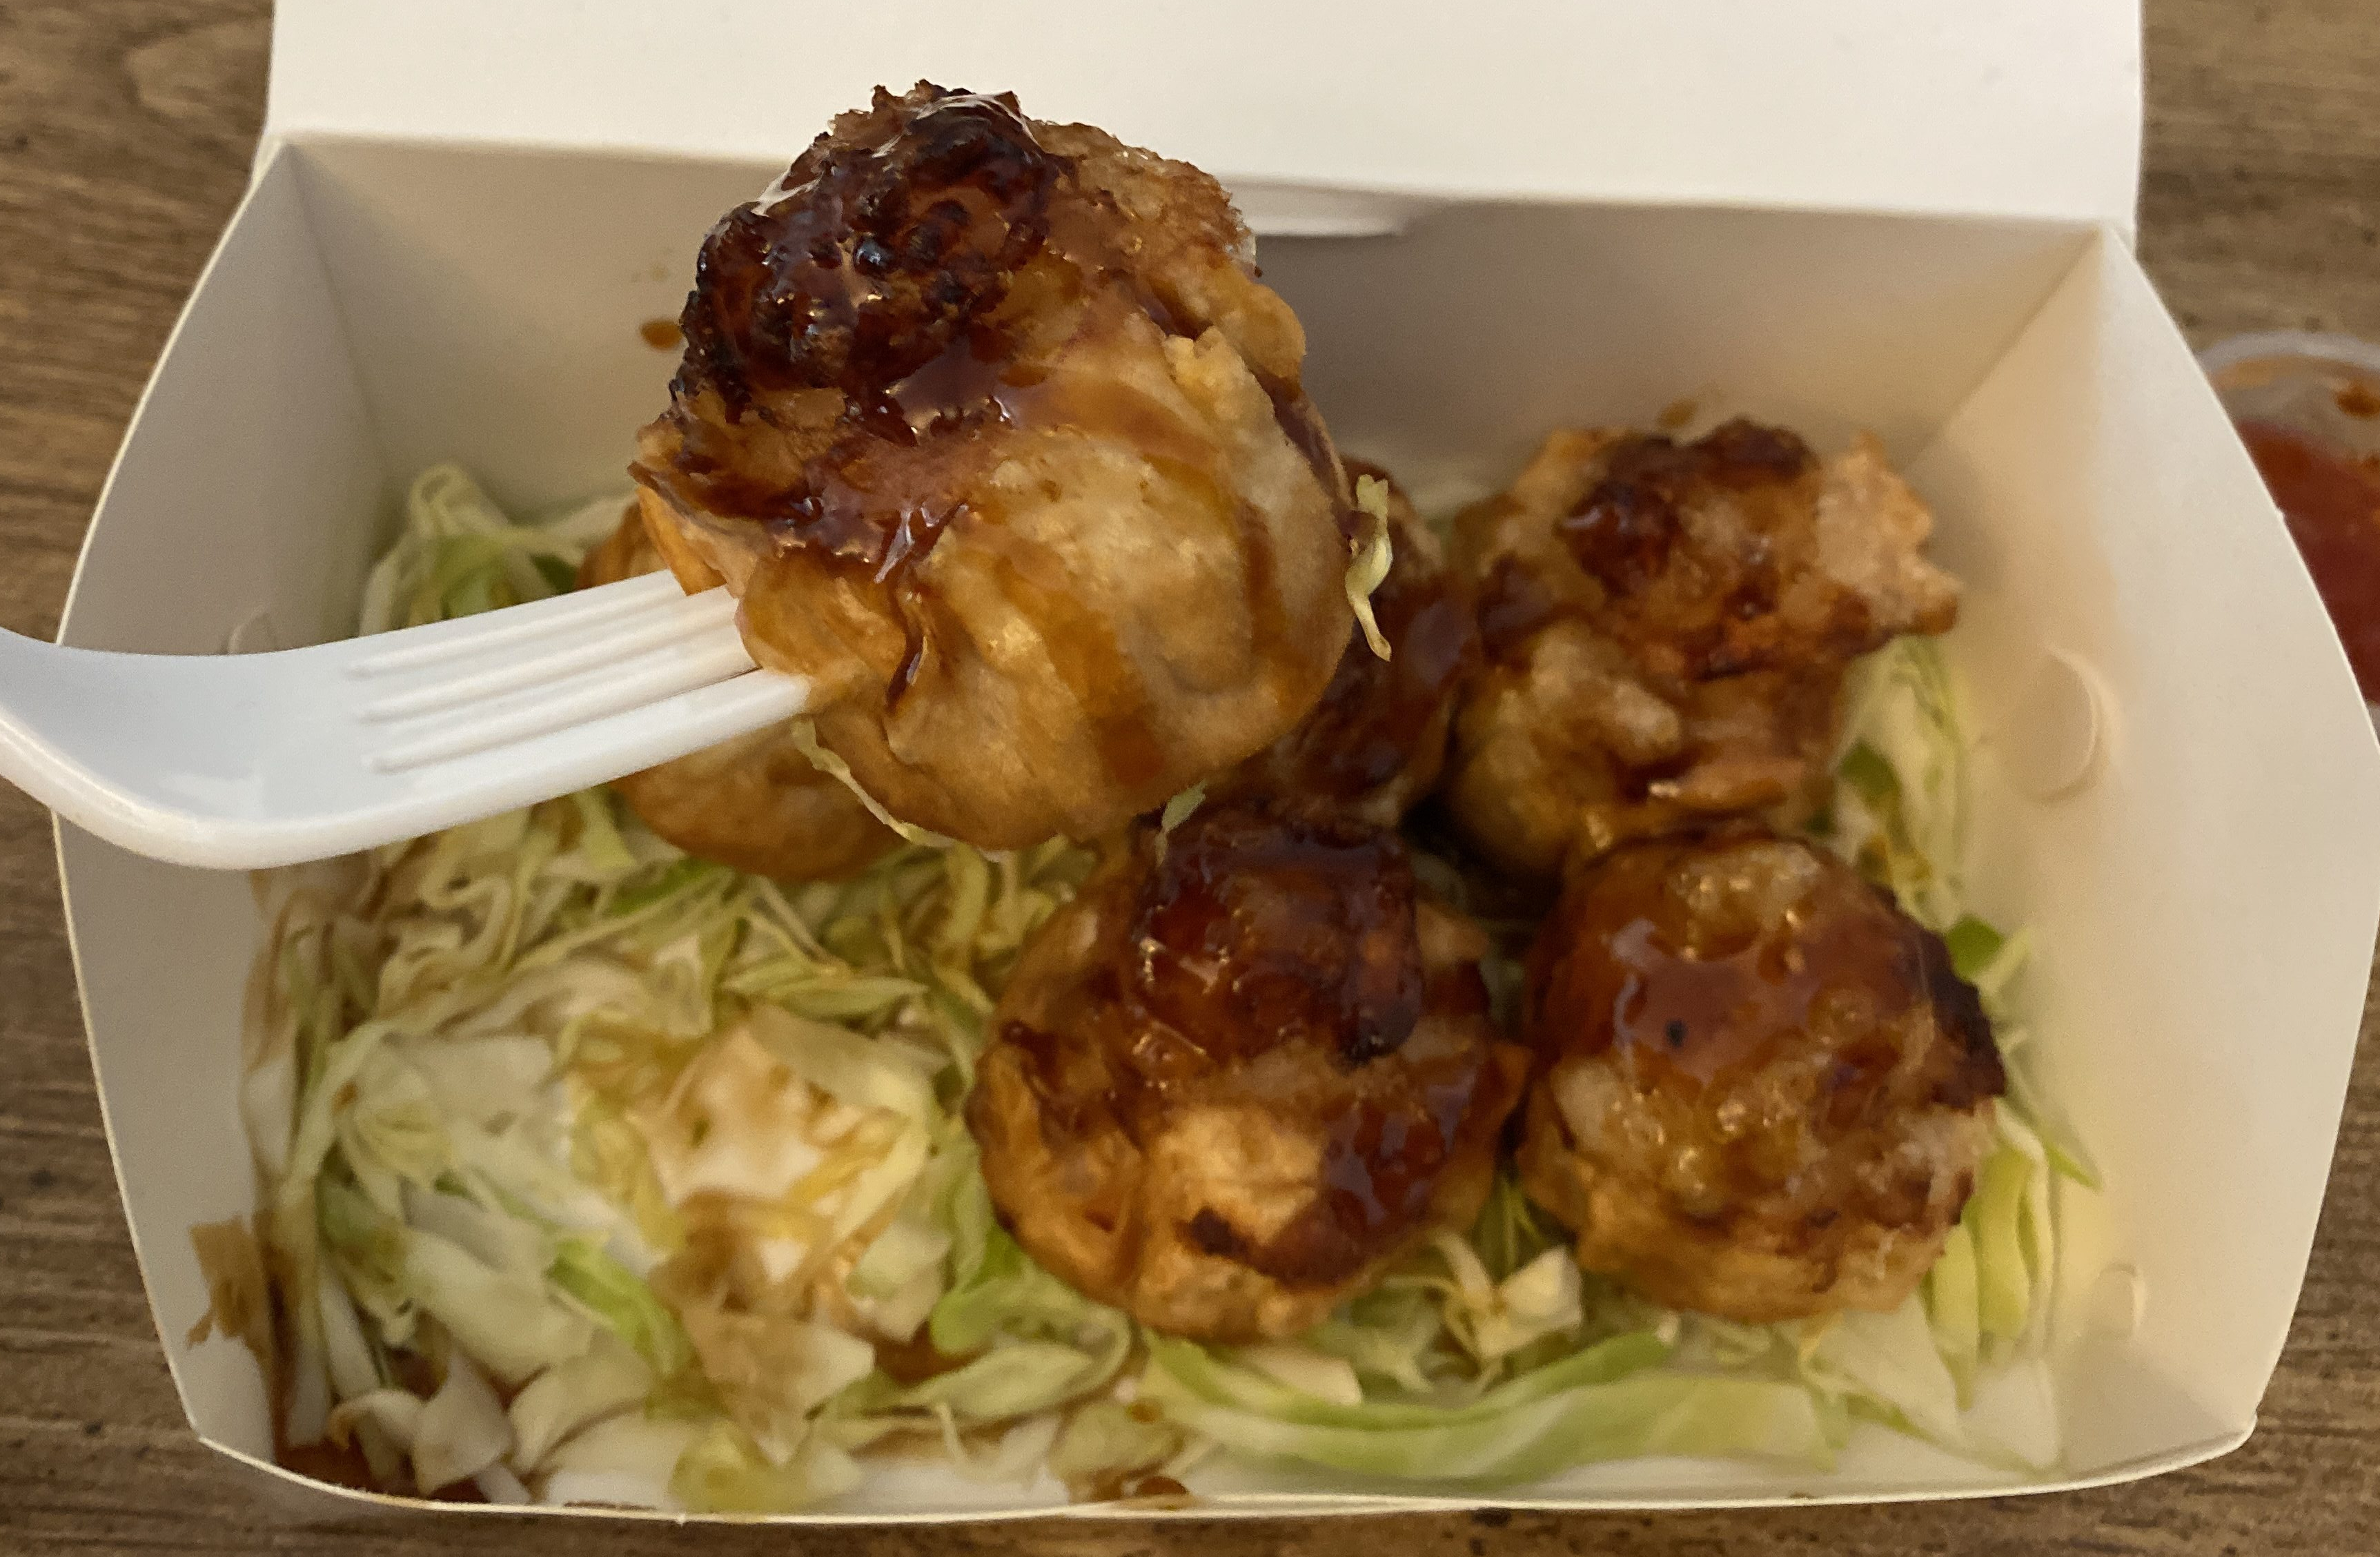 Deep fried shumai from A Sack of Potatoes were exceptionally delicious!